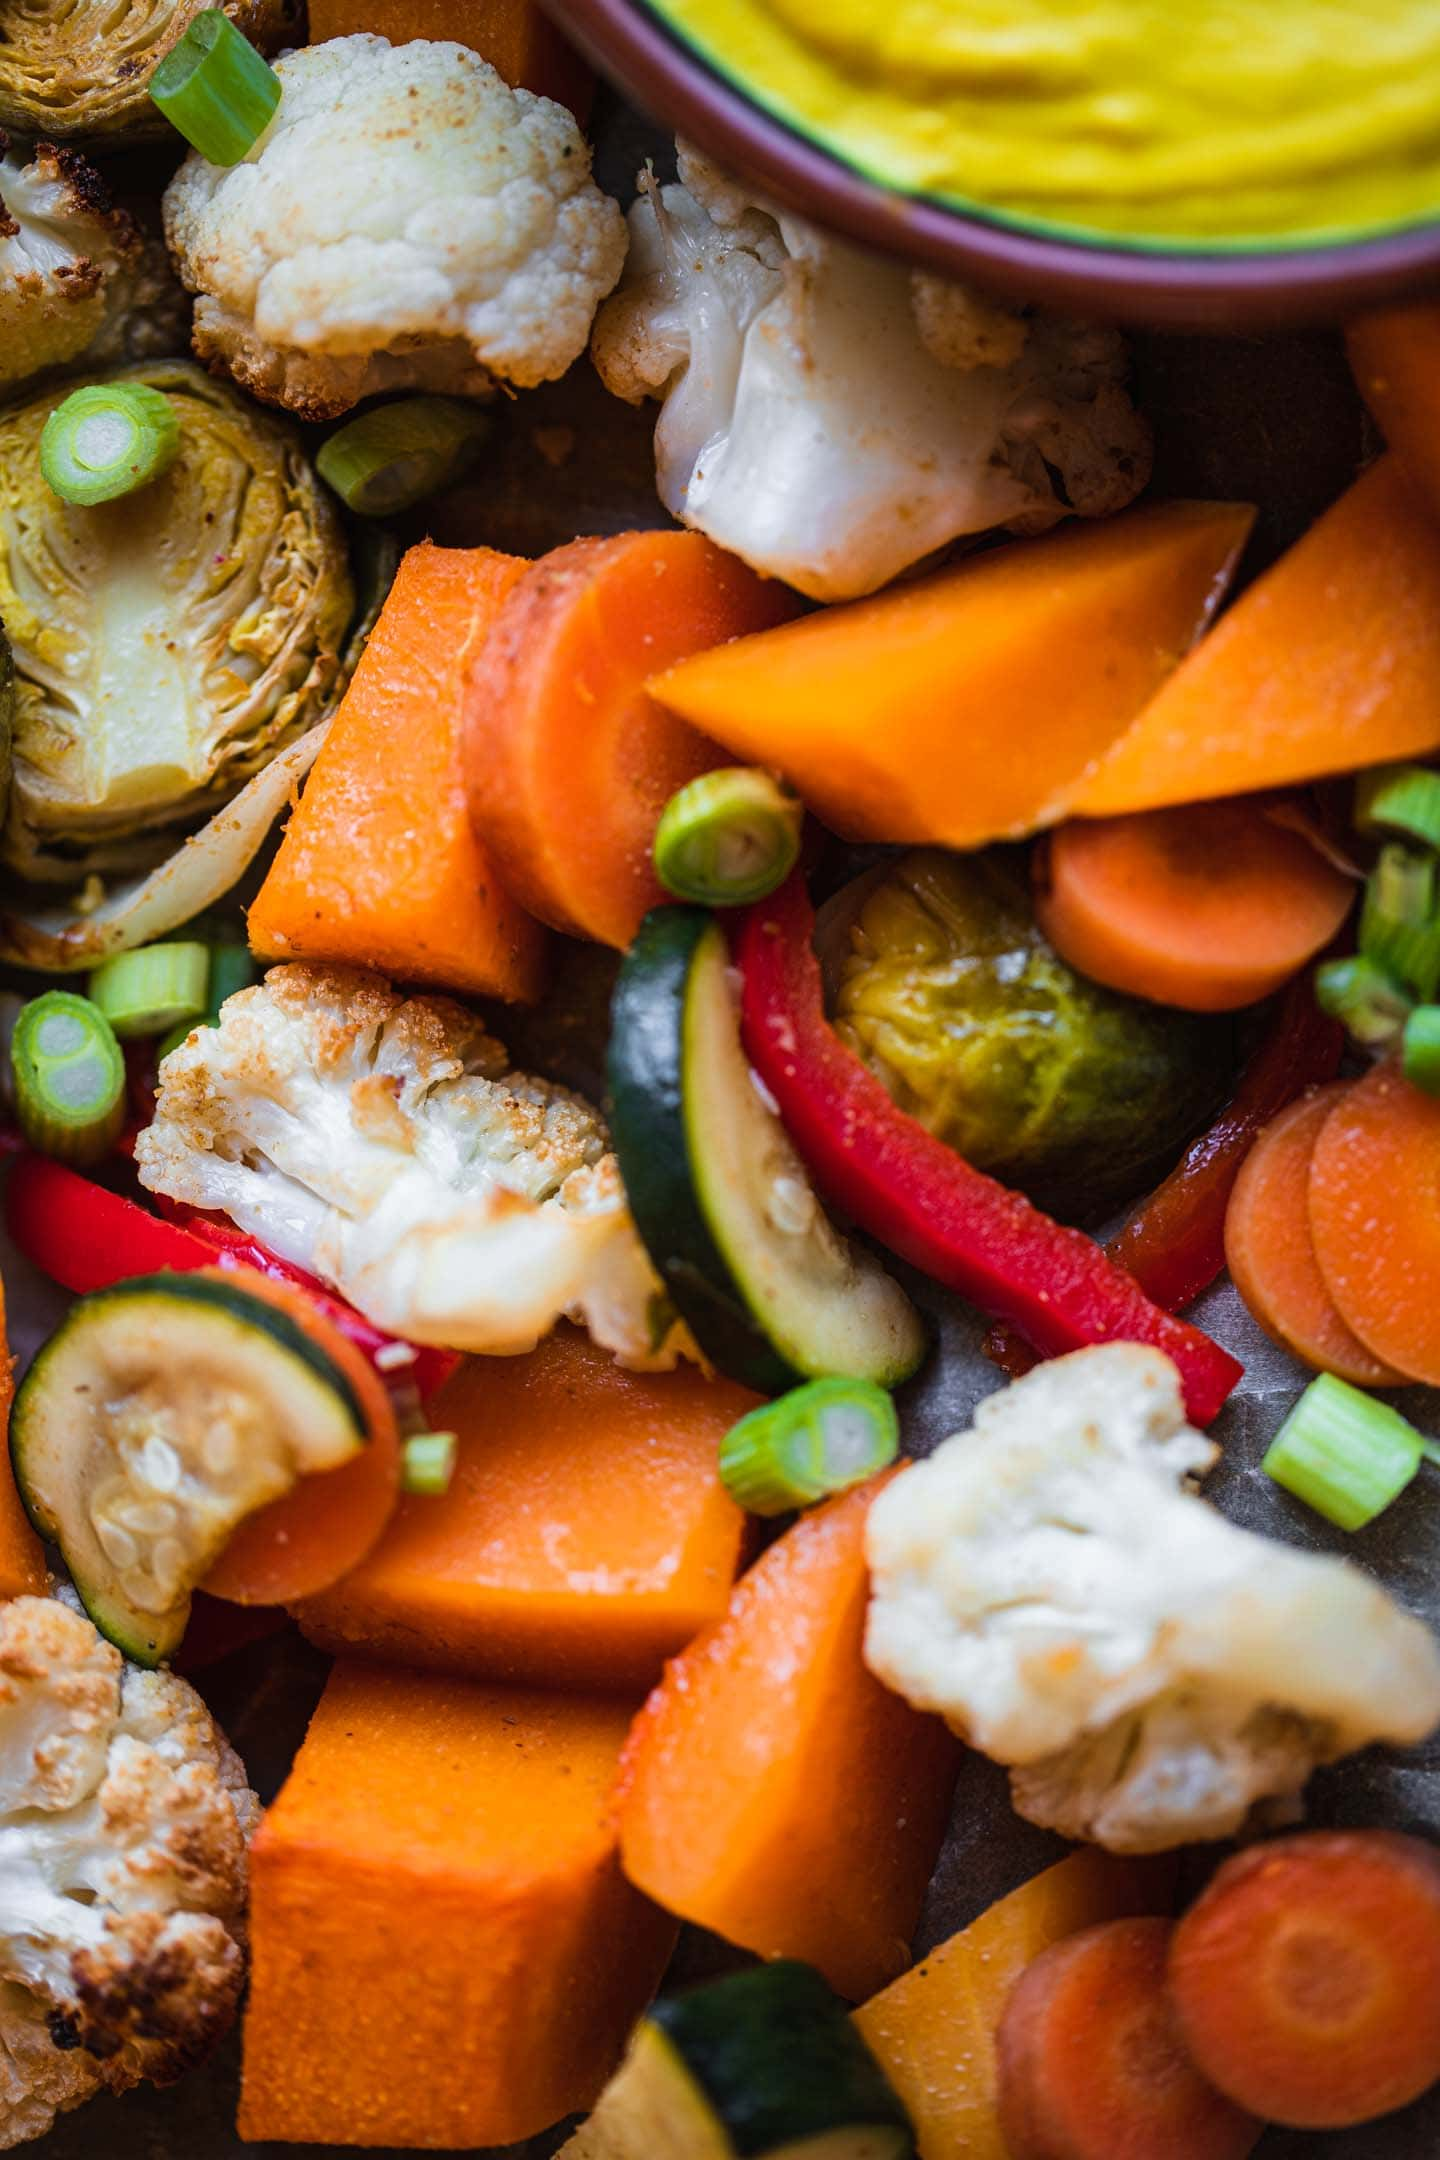 Closeup of Brussels sprouts, butternut squash, cauliflower, carrots, red bell peppers and zucchini on a baking tray